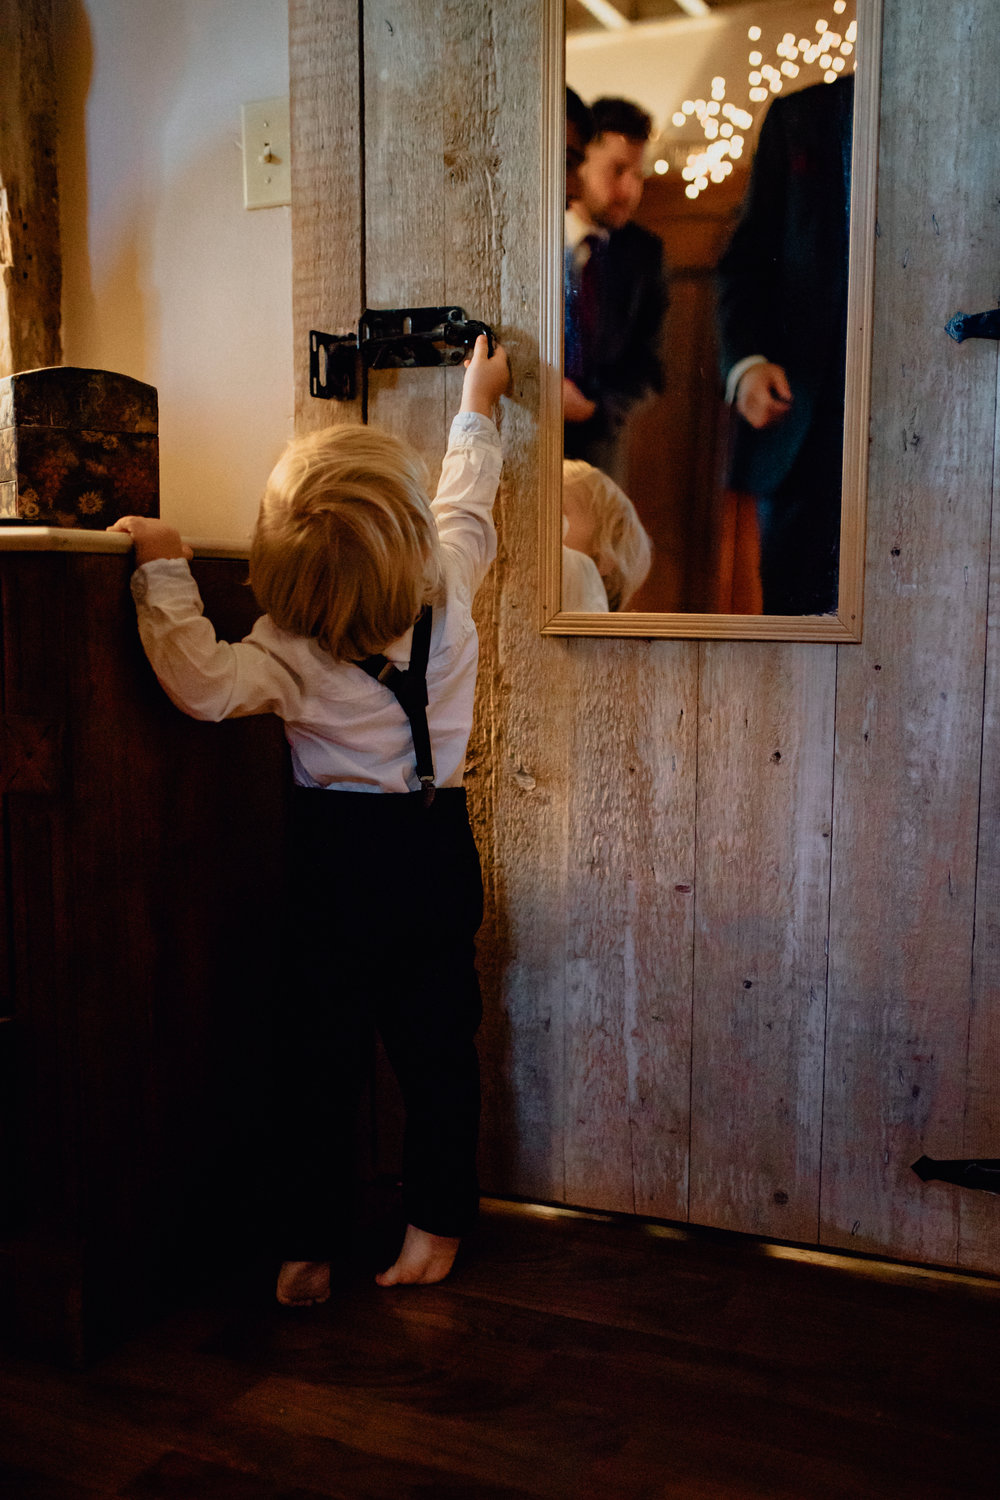 Toddler reaching for door handle in suit